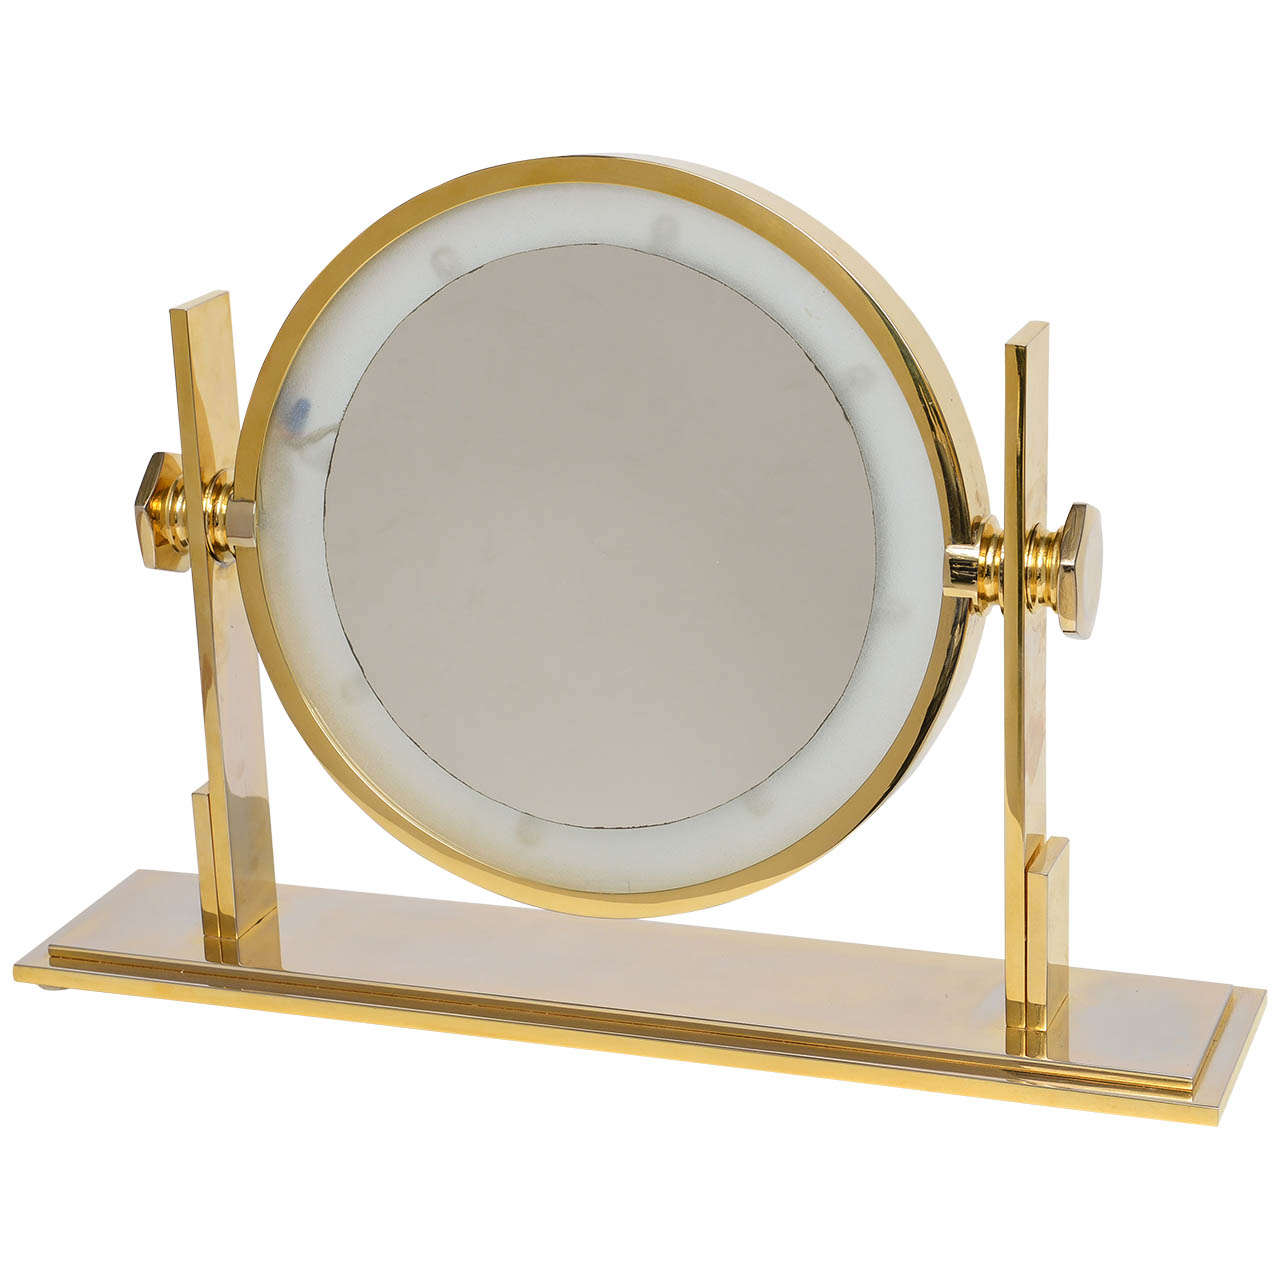 Vanity Mirror With Lights Table : Karl Springer Lighted Table Top Vanity Mirror at 1stdibs